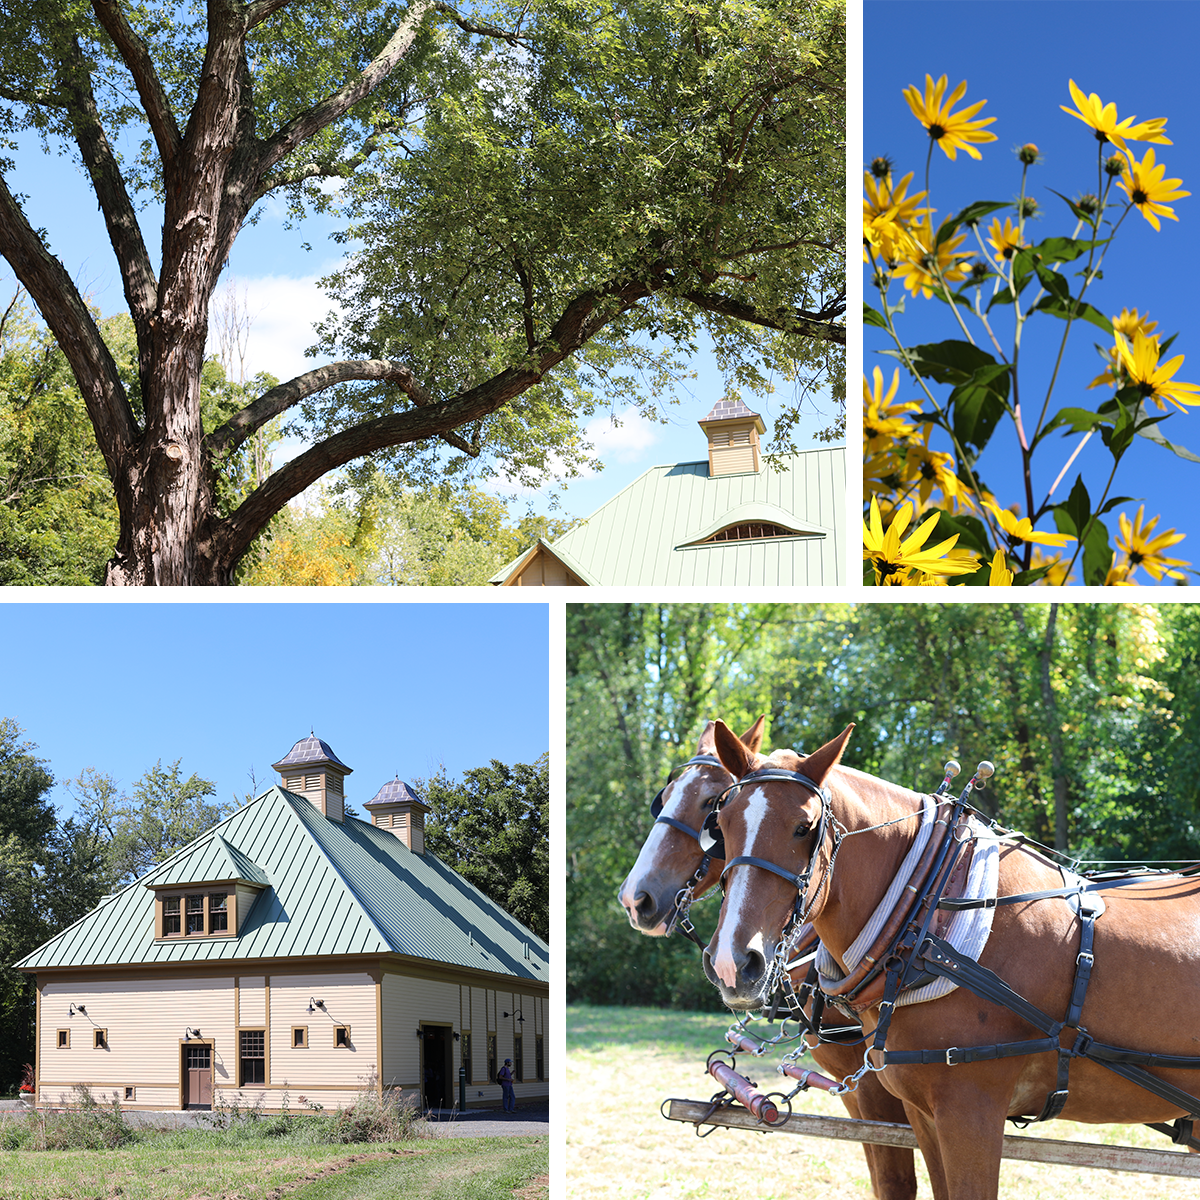 Collage showing redone horse barn, flowers, tree, and team of horses